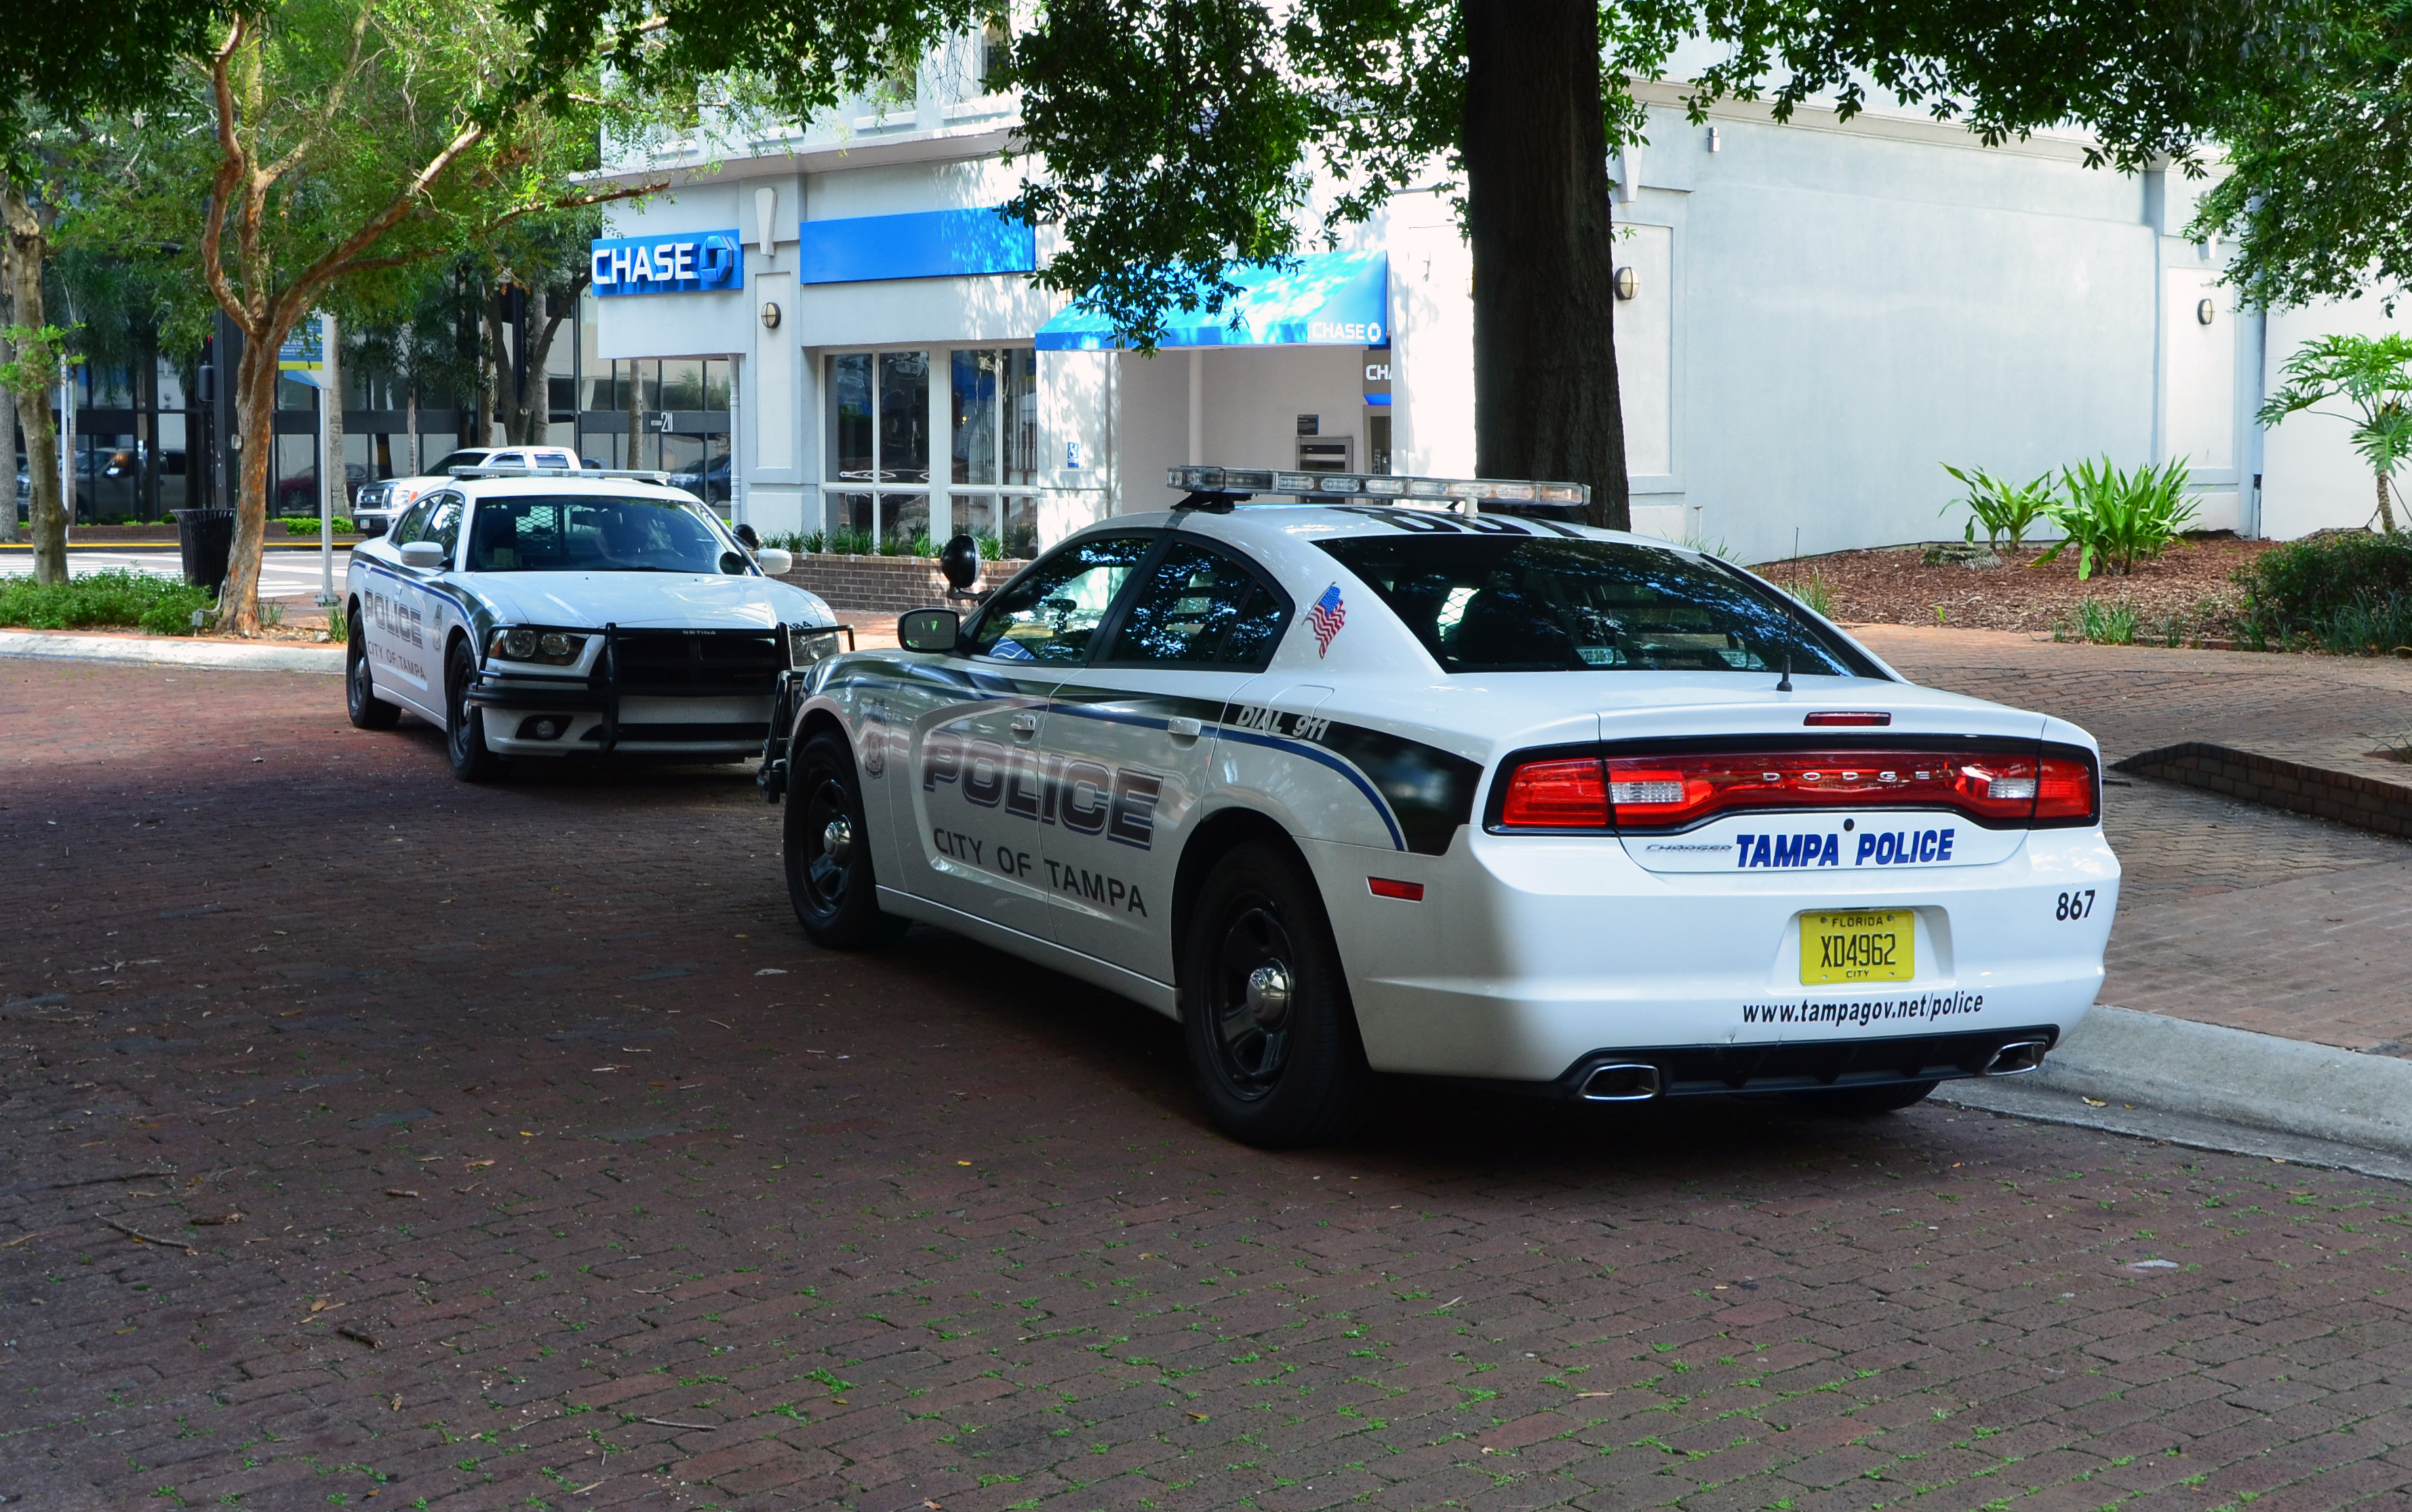 File:Dodge Charger Tampa Police 1.jpg - Wikimedia Commons